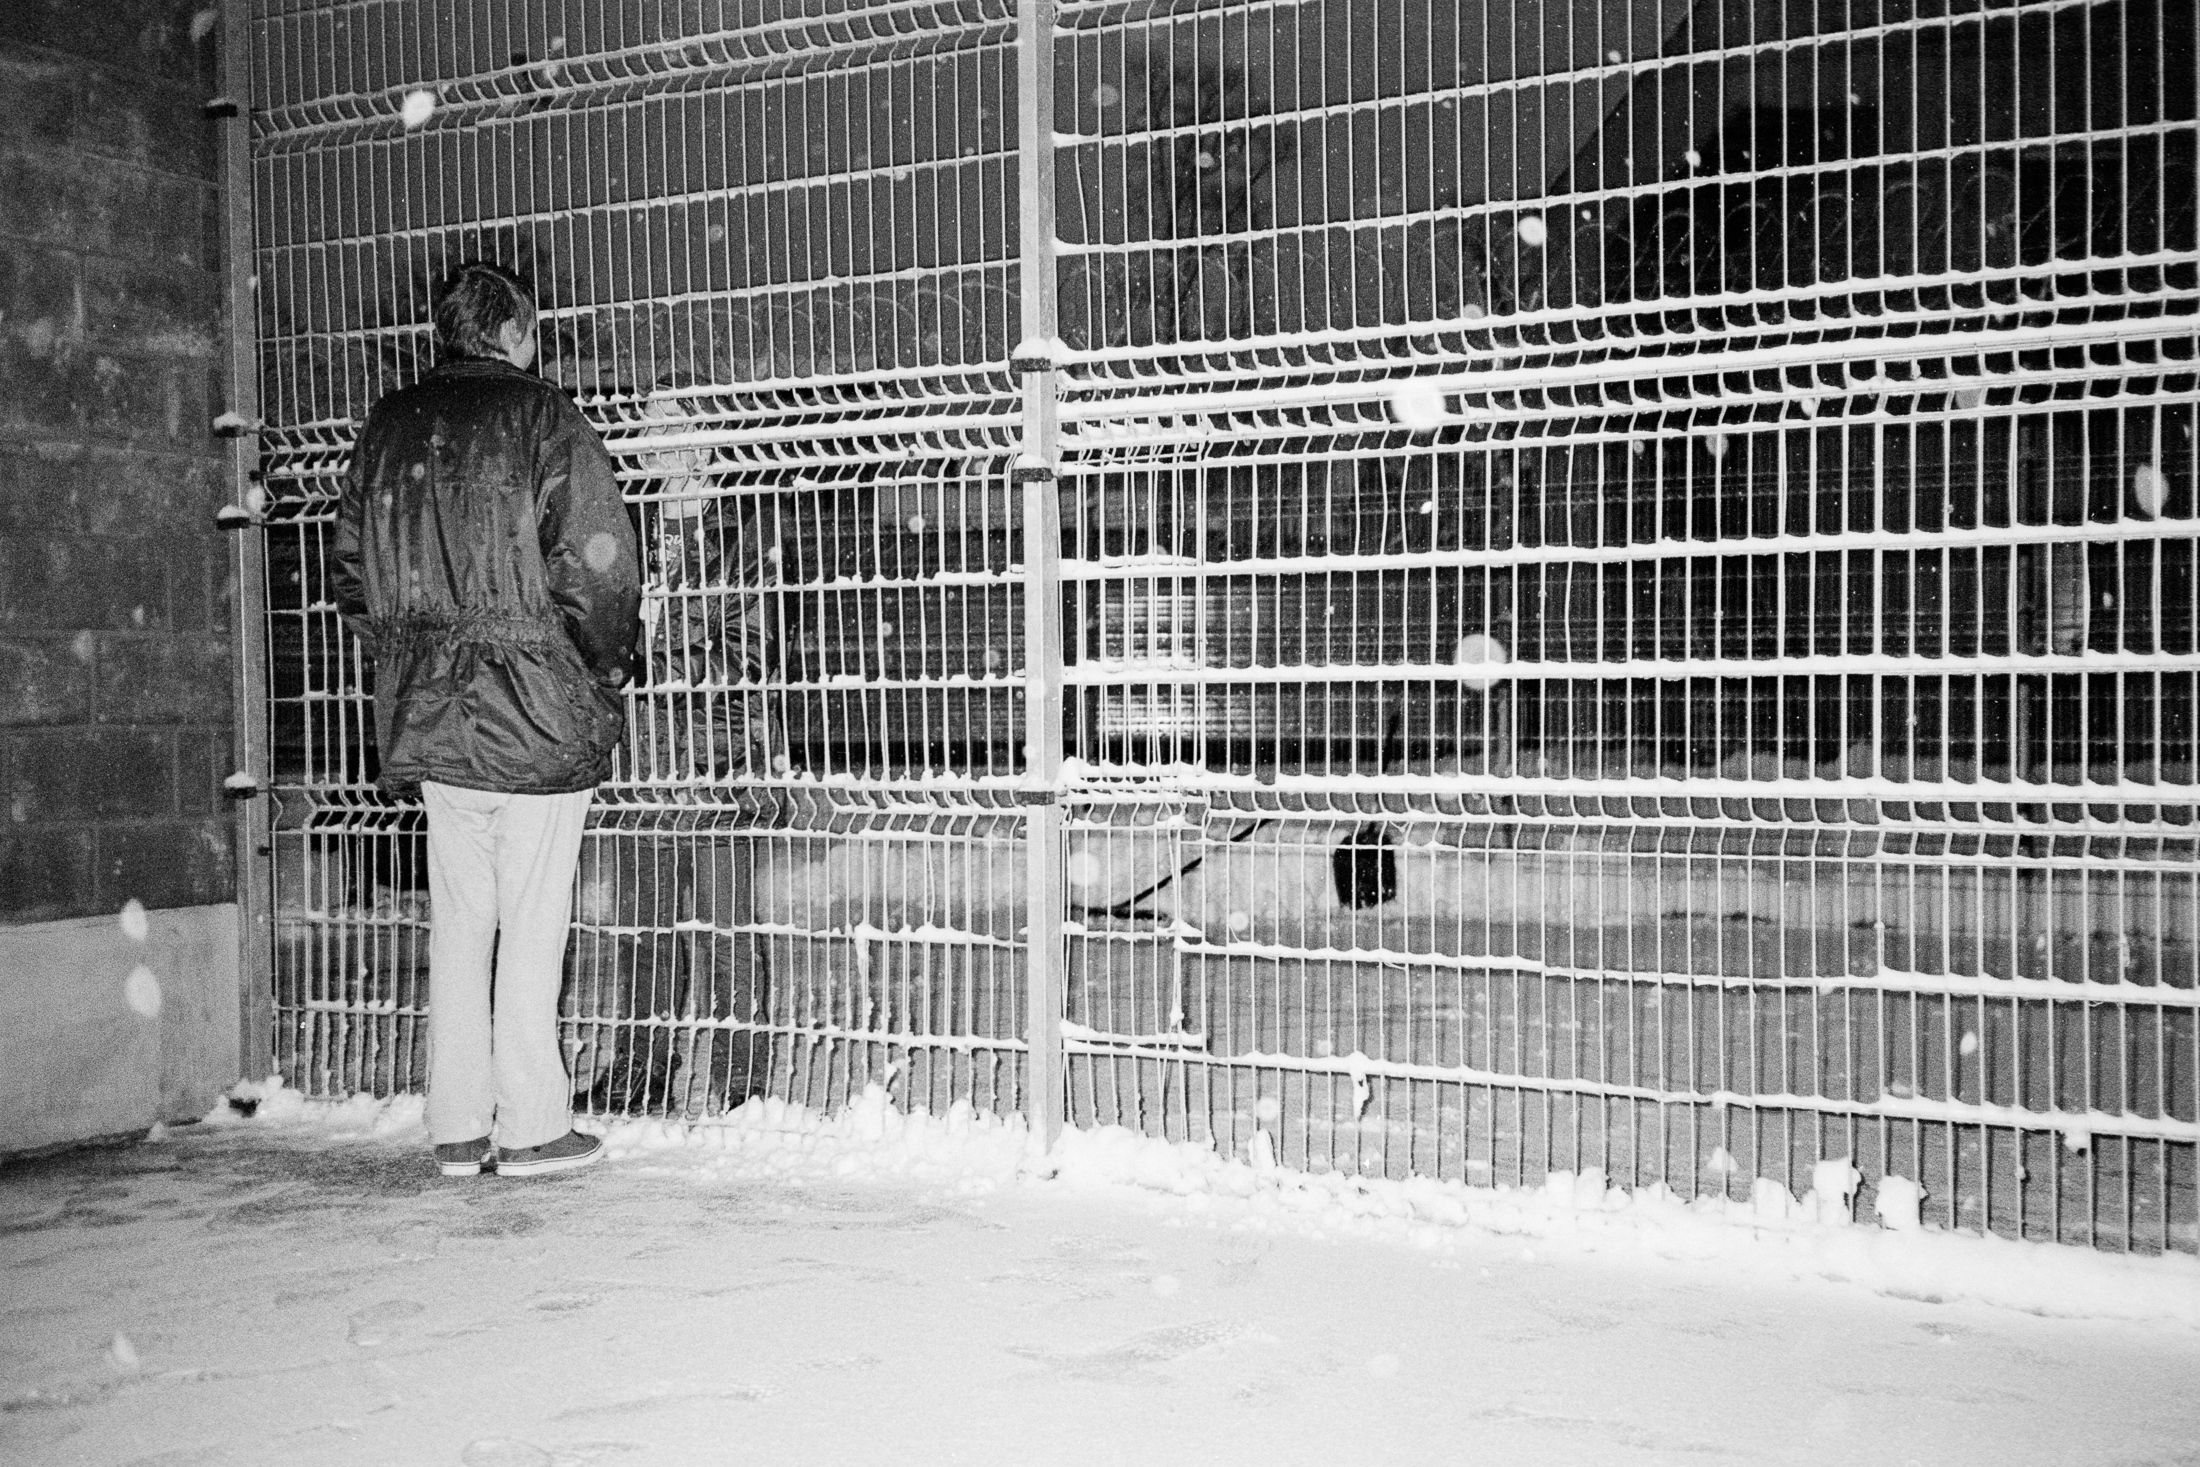 Here through a fence separating spaces of the prison, two inmates discuss. One of the detainees' tasks is to clear the snow from the aisles. (photo: Emīls )